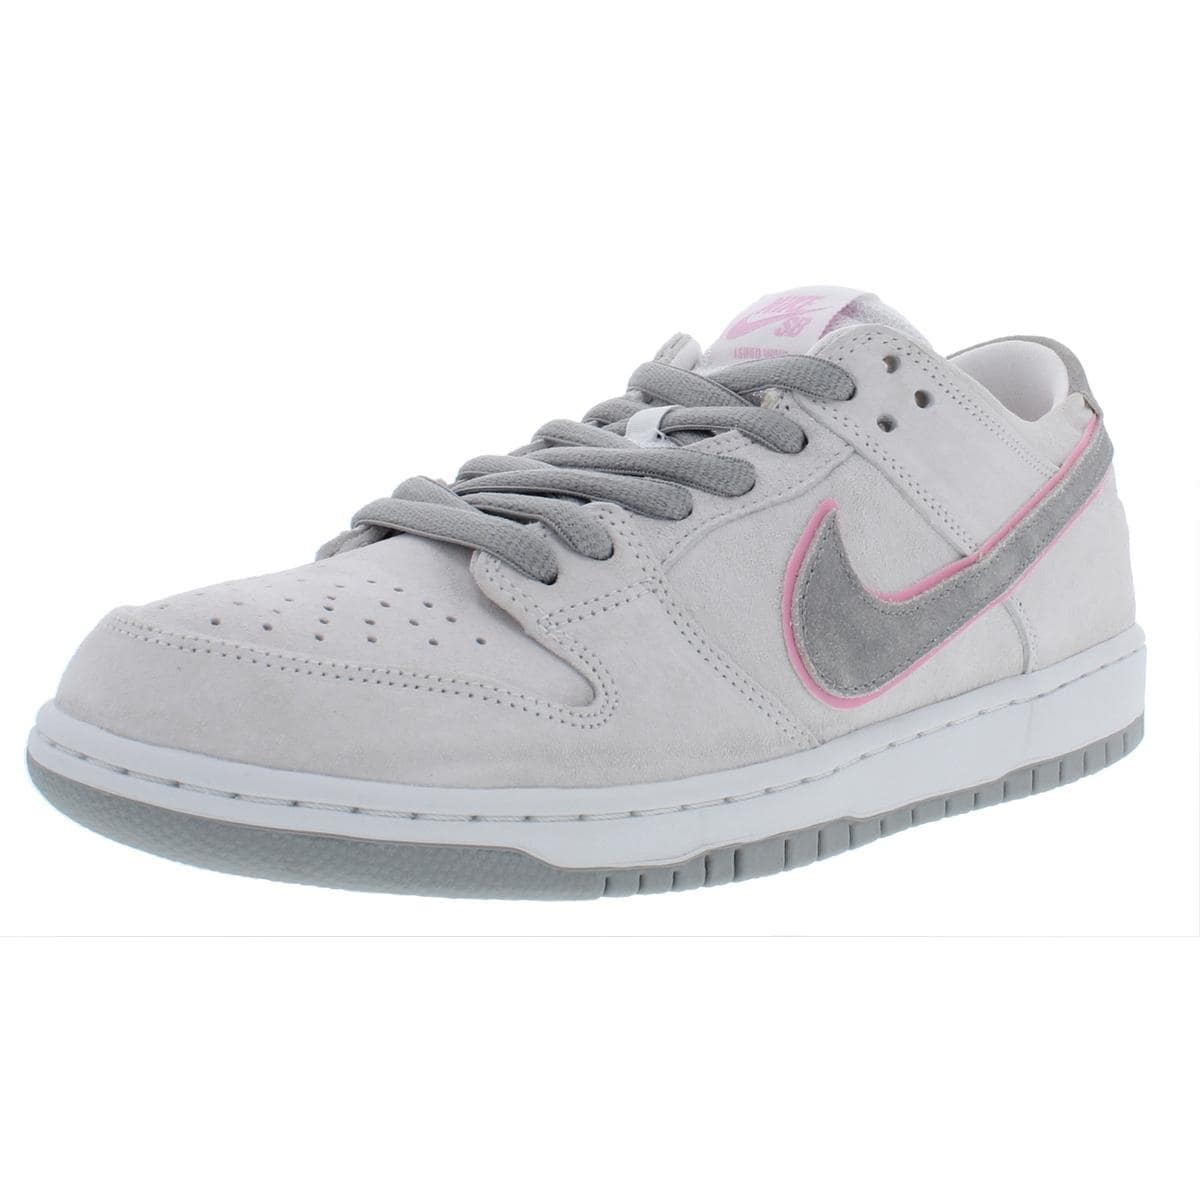 Nike Mens SB Zoom Dunk Low Pro IW Athletic Shoes Suede Running